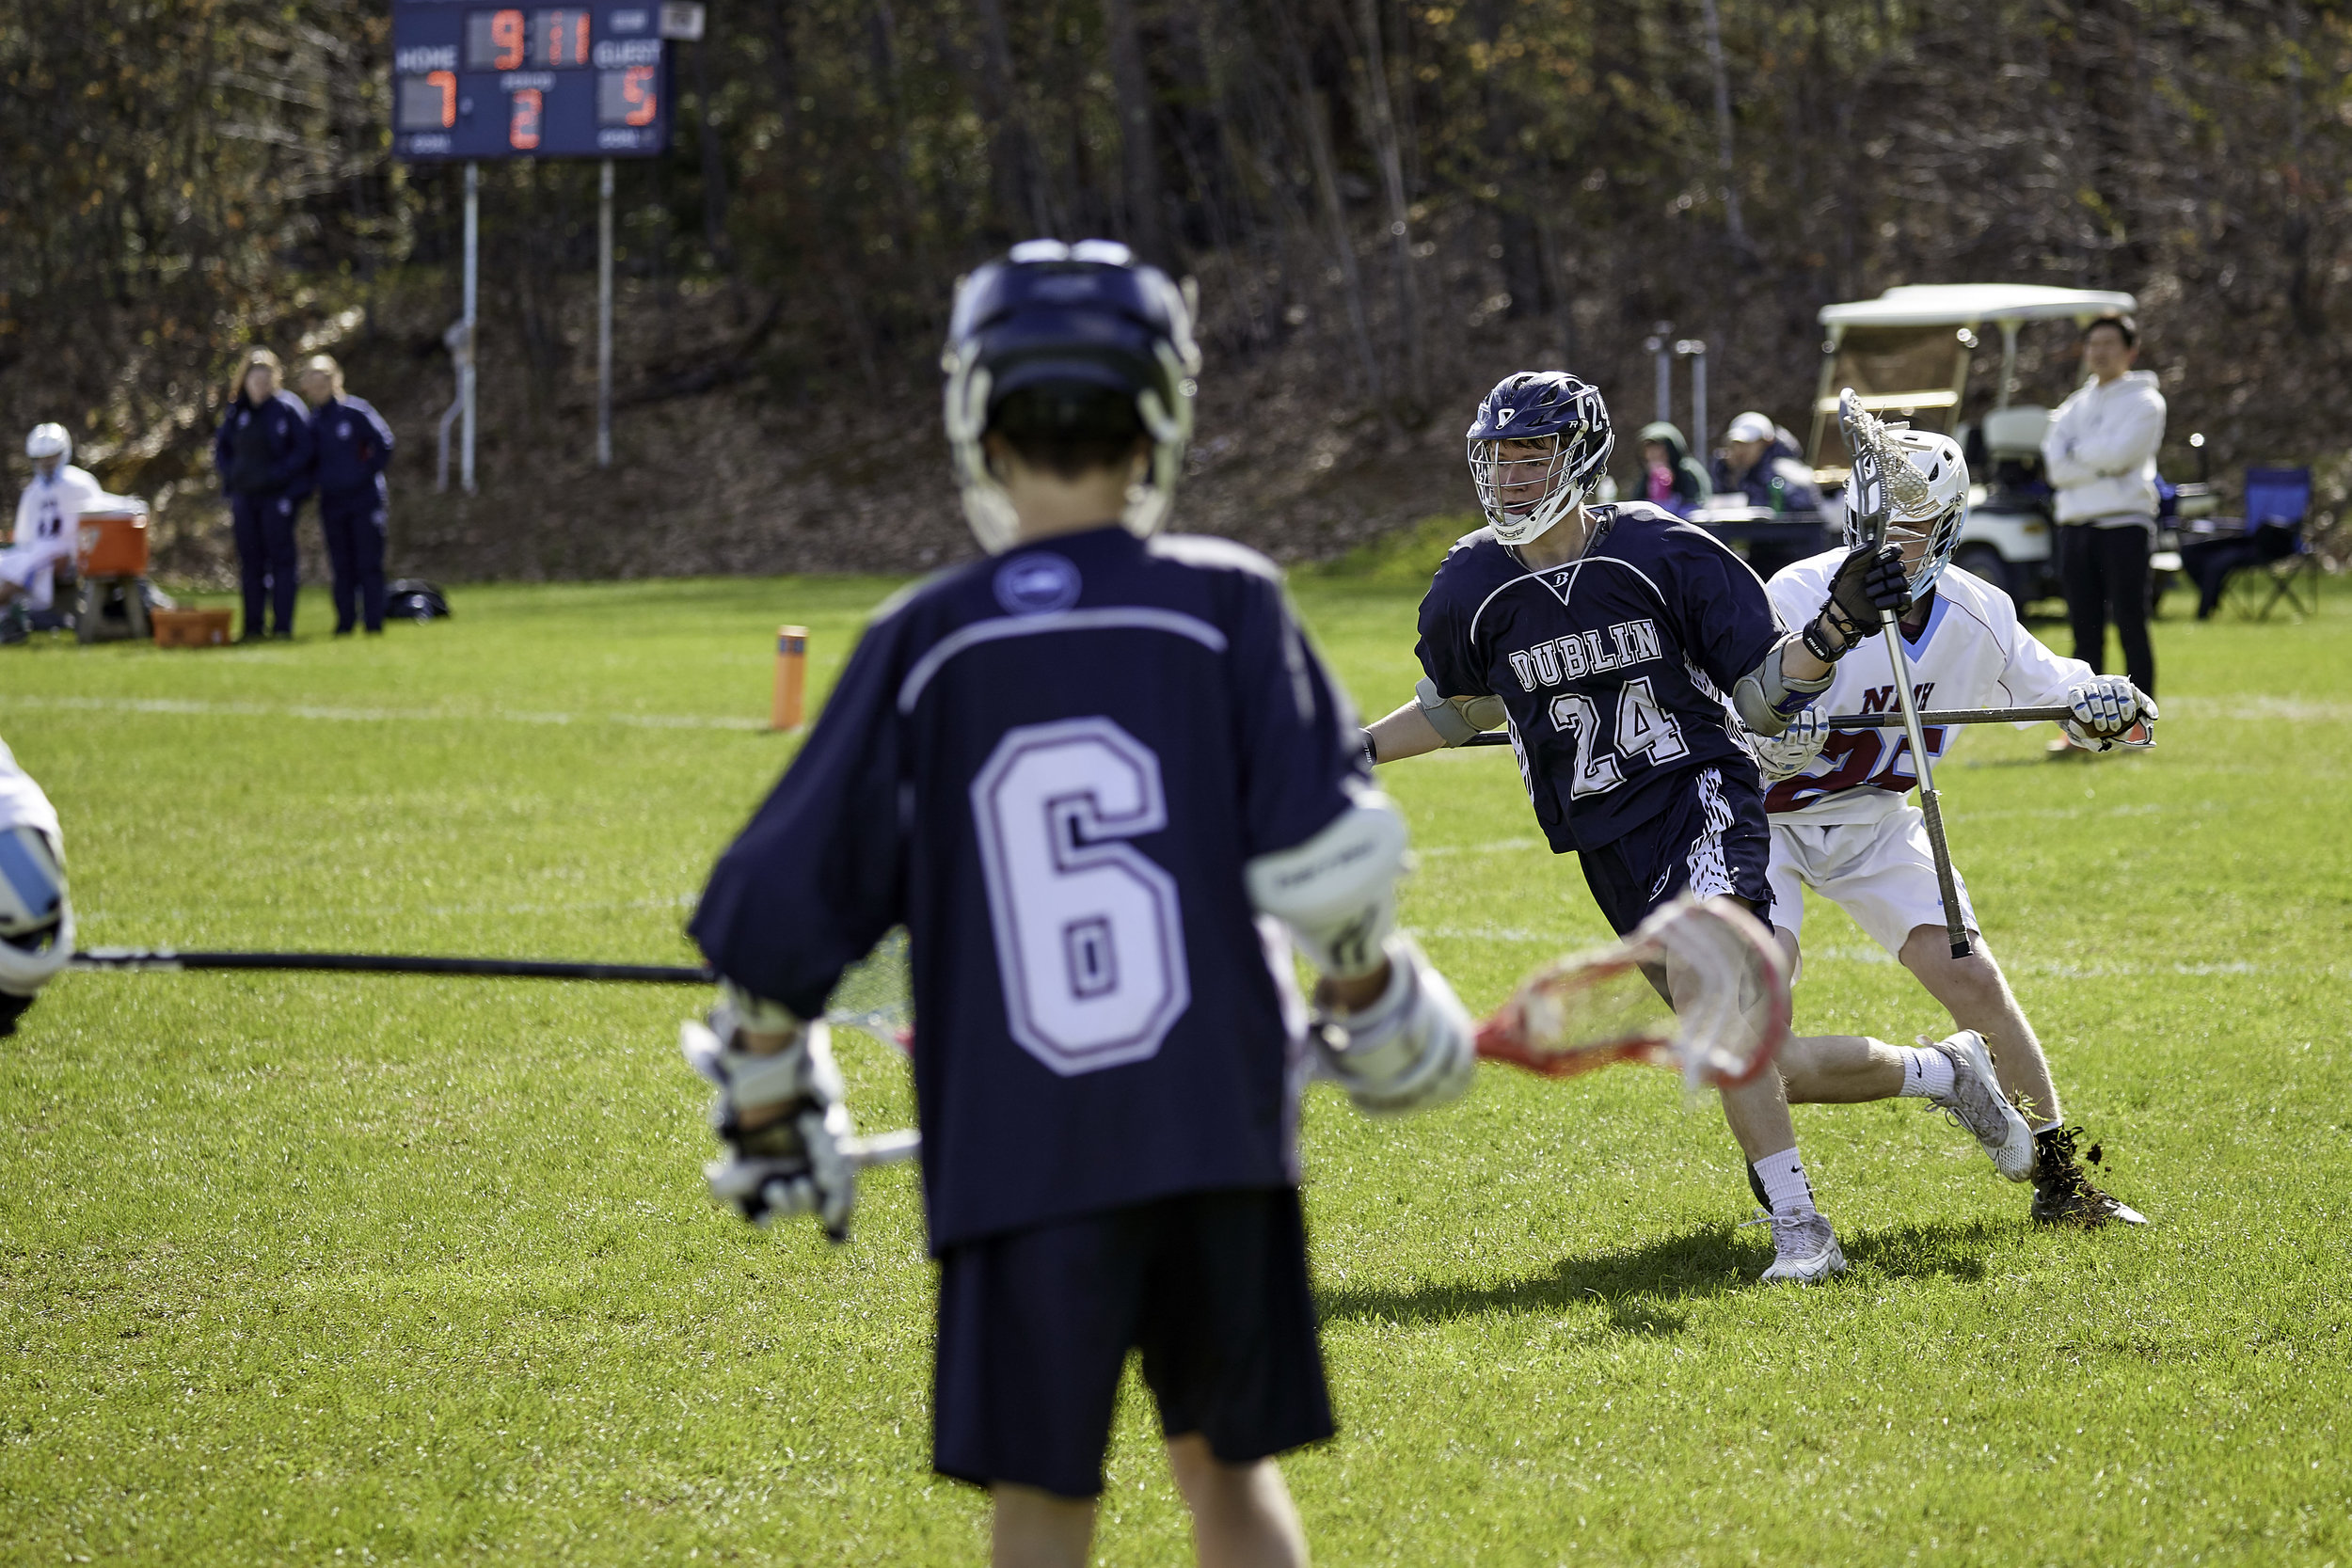 Boys Lax vs Northfield Mount Hermon JV - May 15 2019 - 0056.jpg